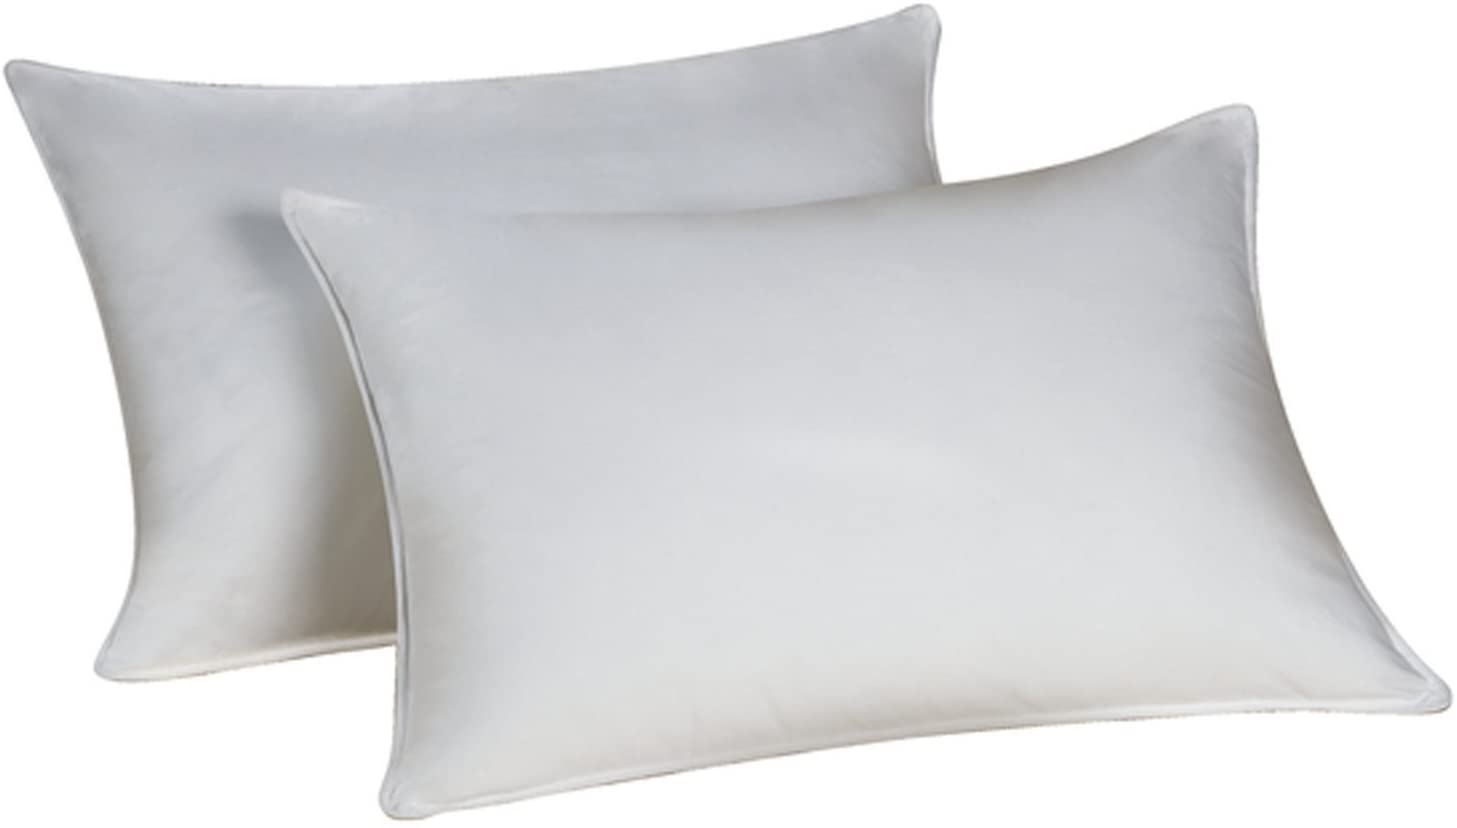 Set of 2 Classic Down Dreams King Pillows found in Hilton Hotels